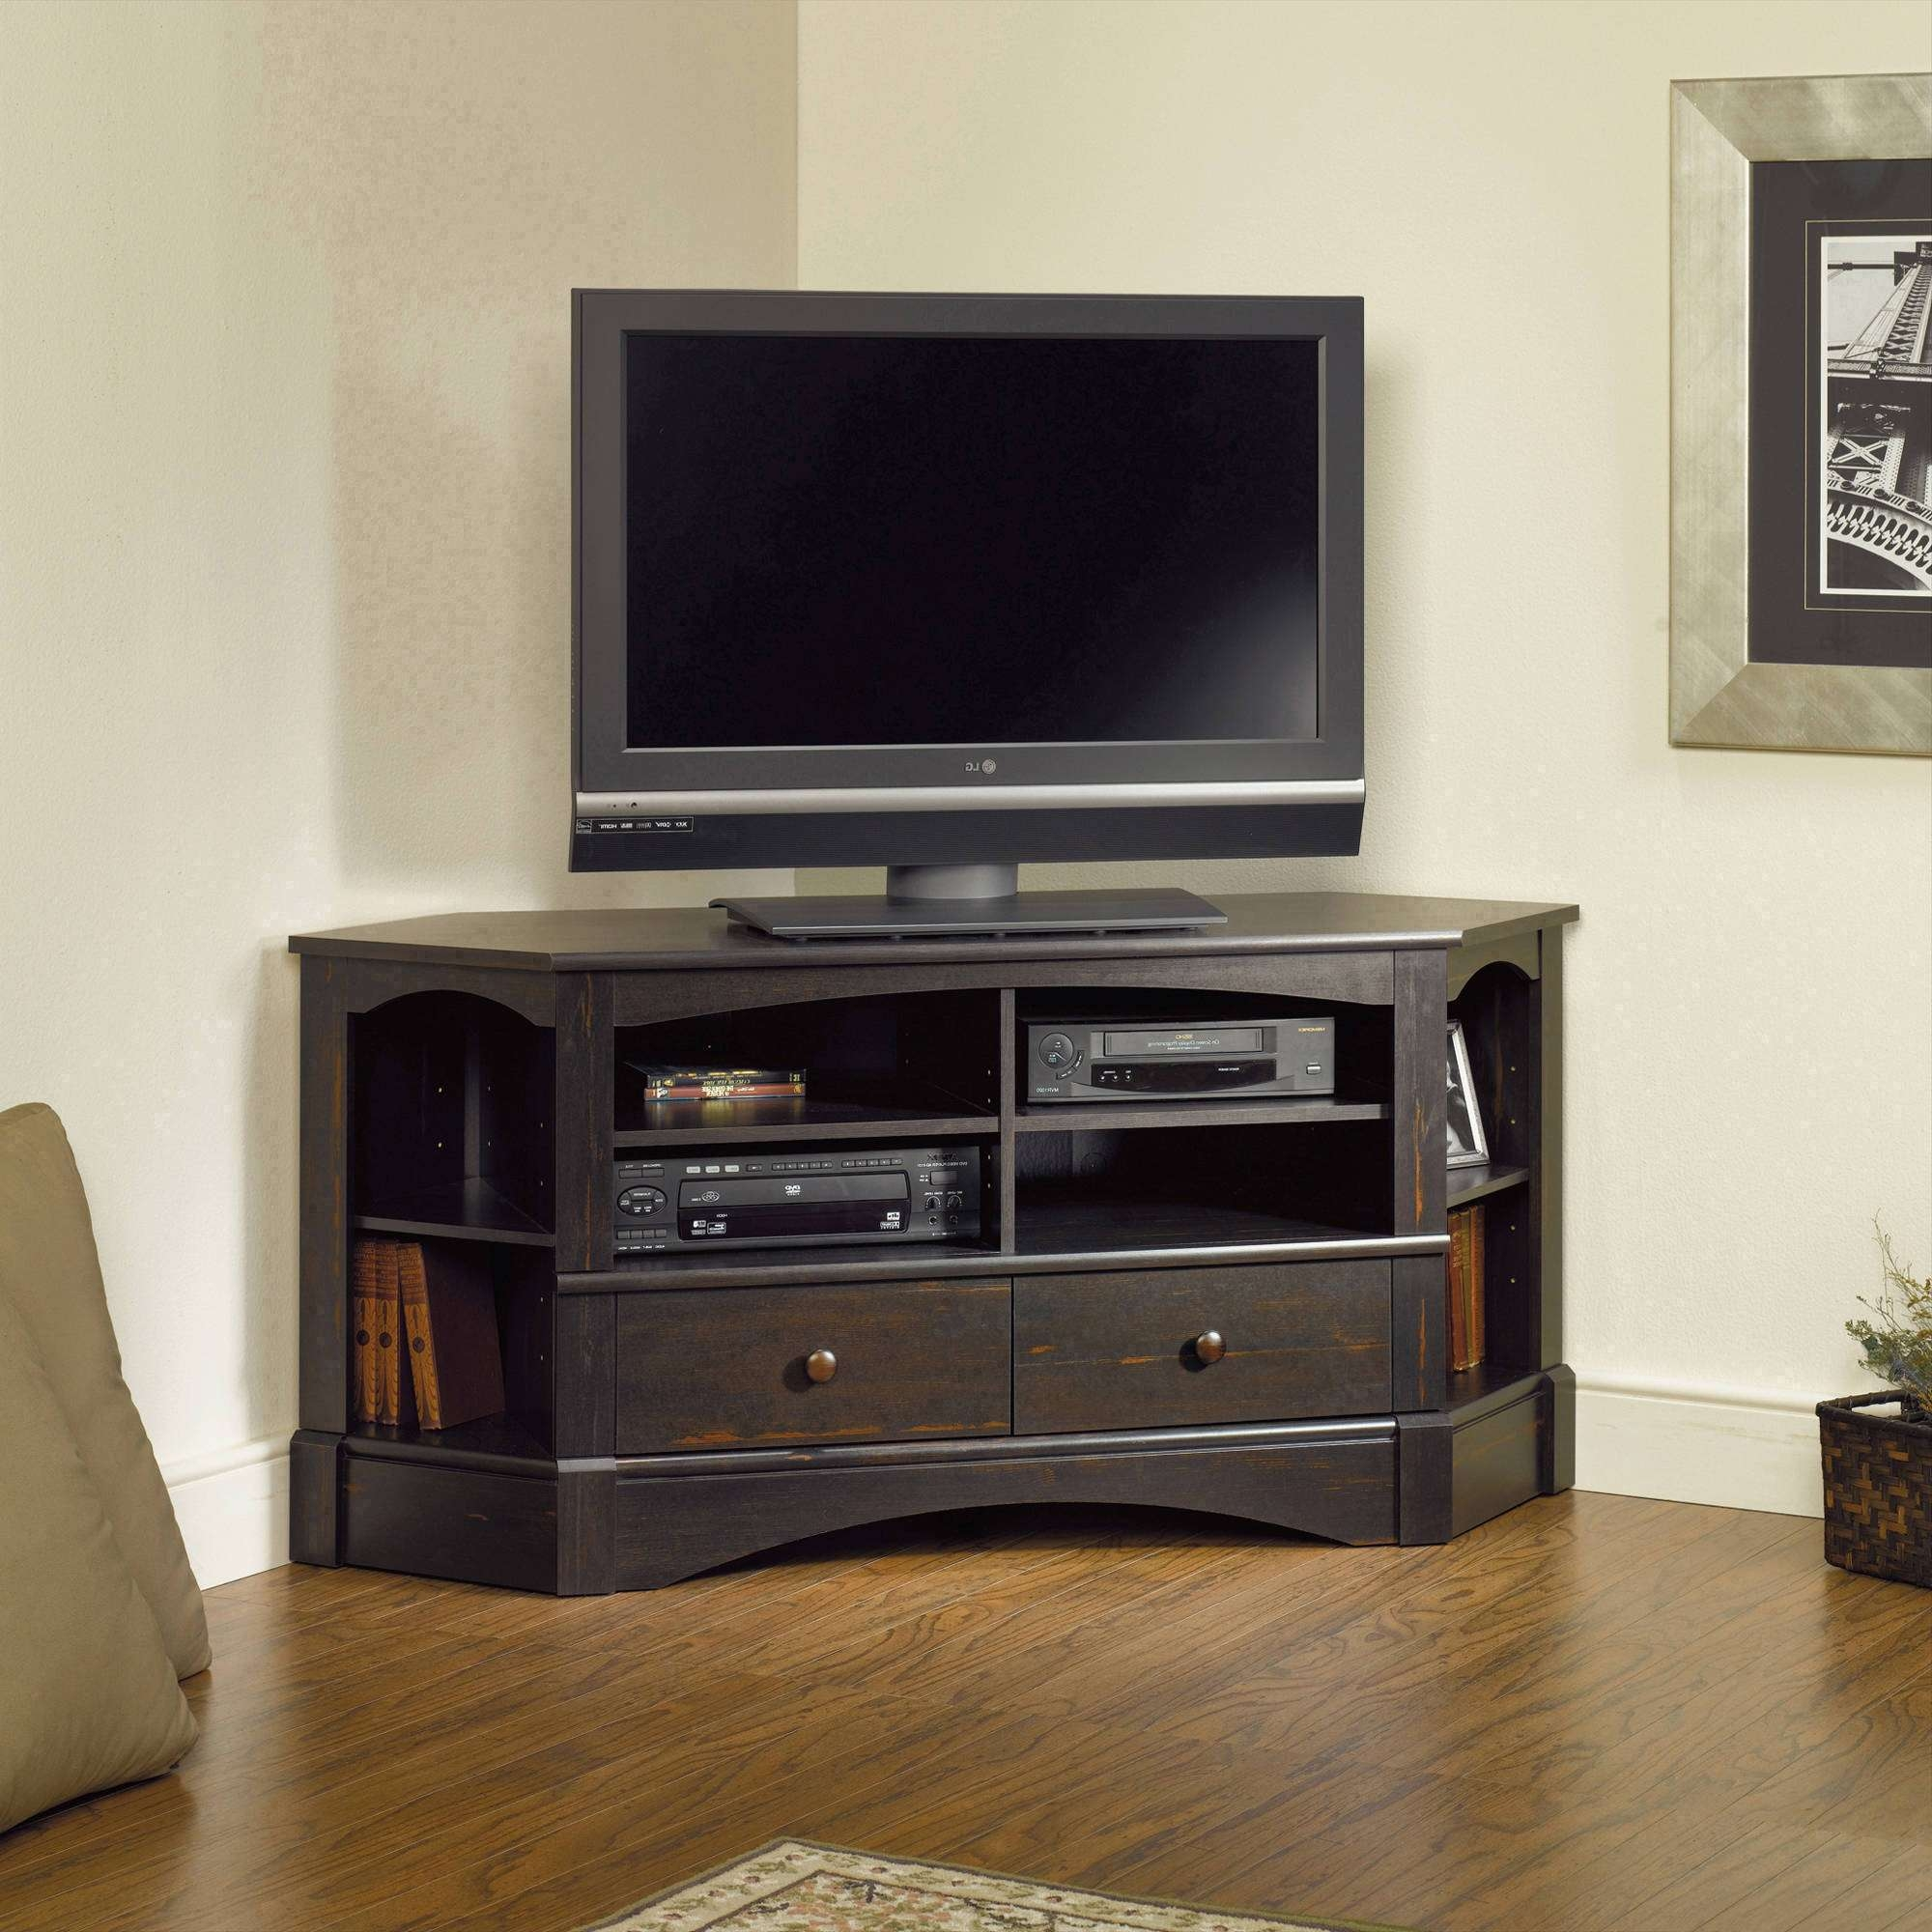 Perfect Corner Tv Stand For 55 Inch Flat Screen 15 On Home Inside 55 Inch Corner Tv Stands (View 9 of 20)